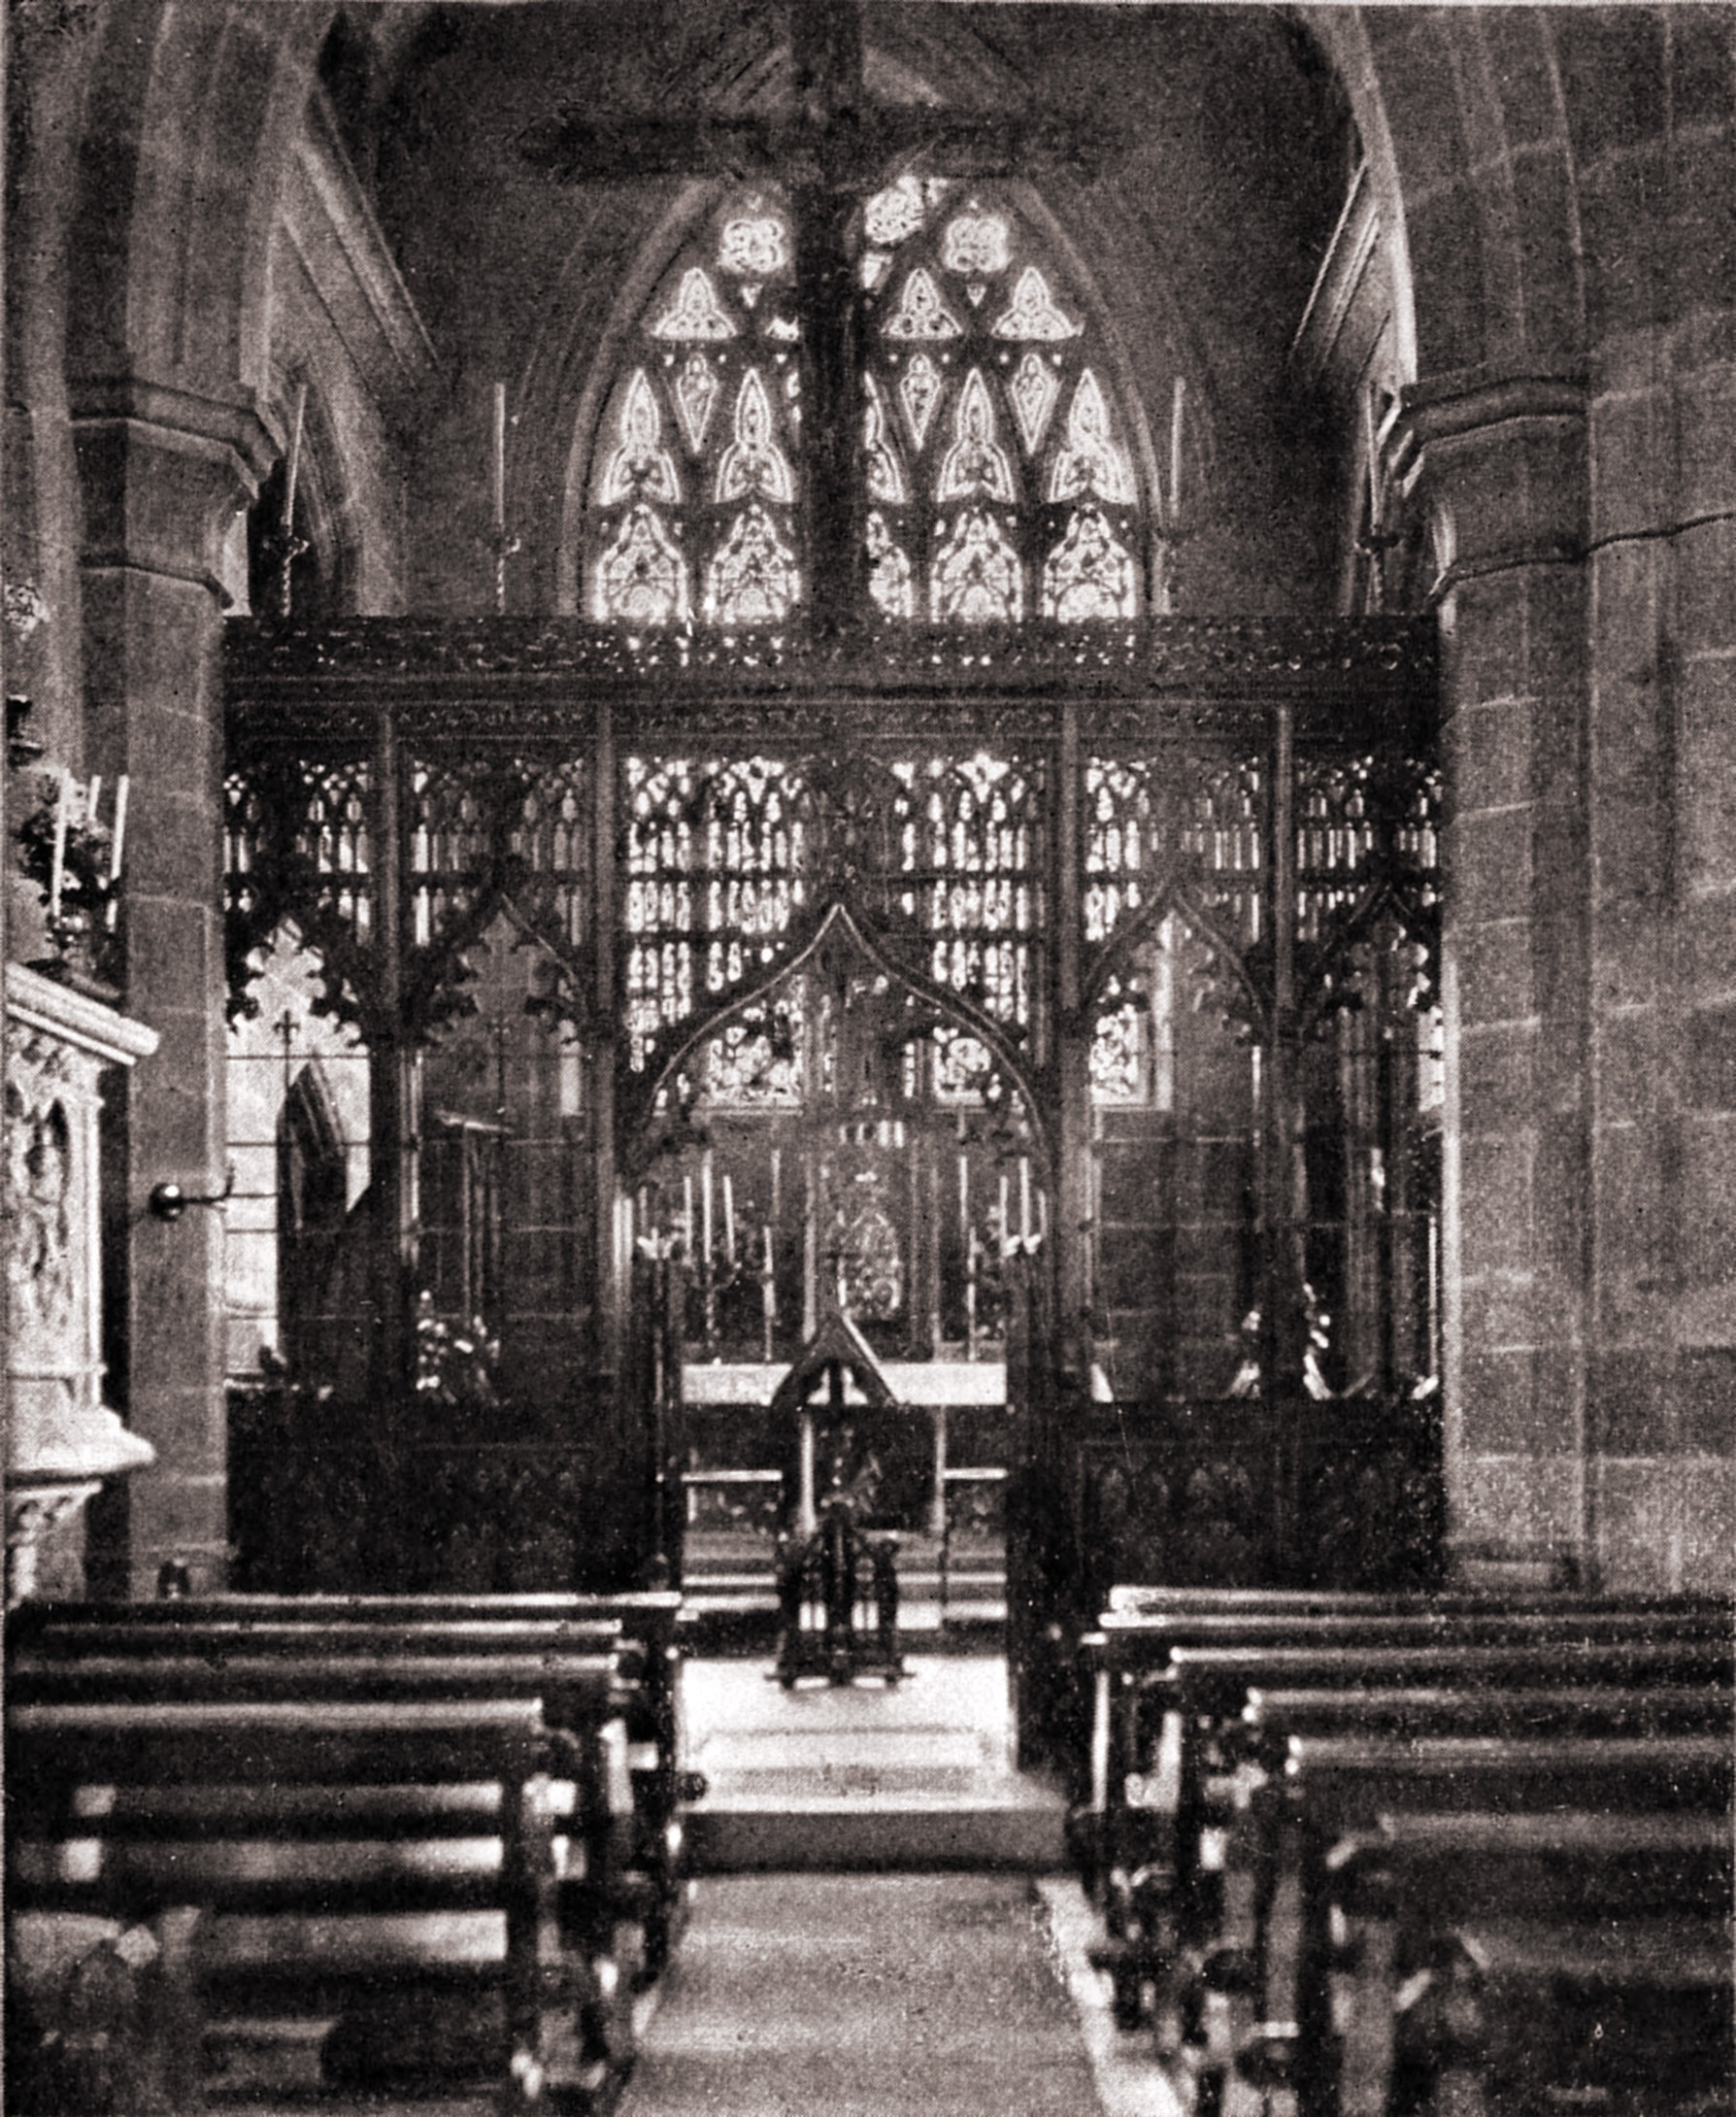 Rood screen and high altar, St Augustine's Church, Ramsgate, England by A. Lockett about 1923